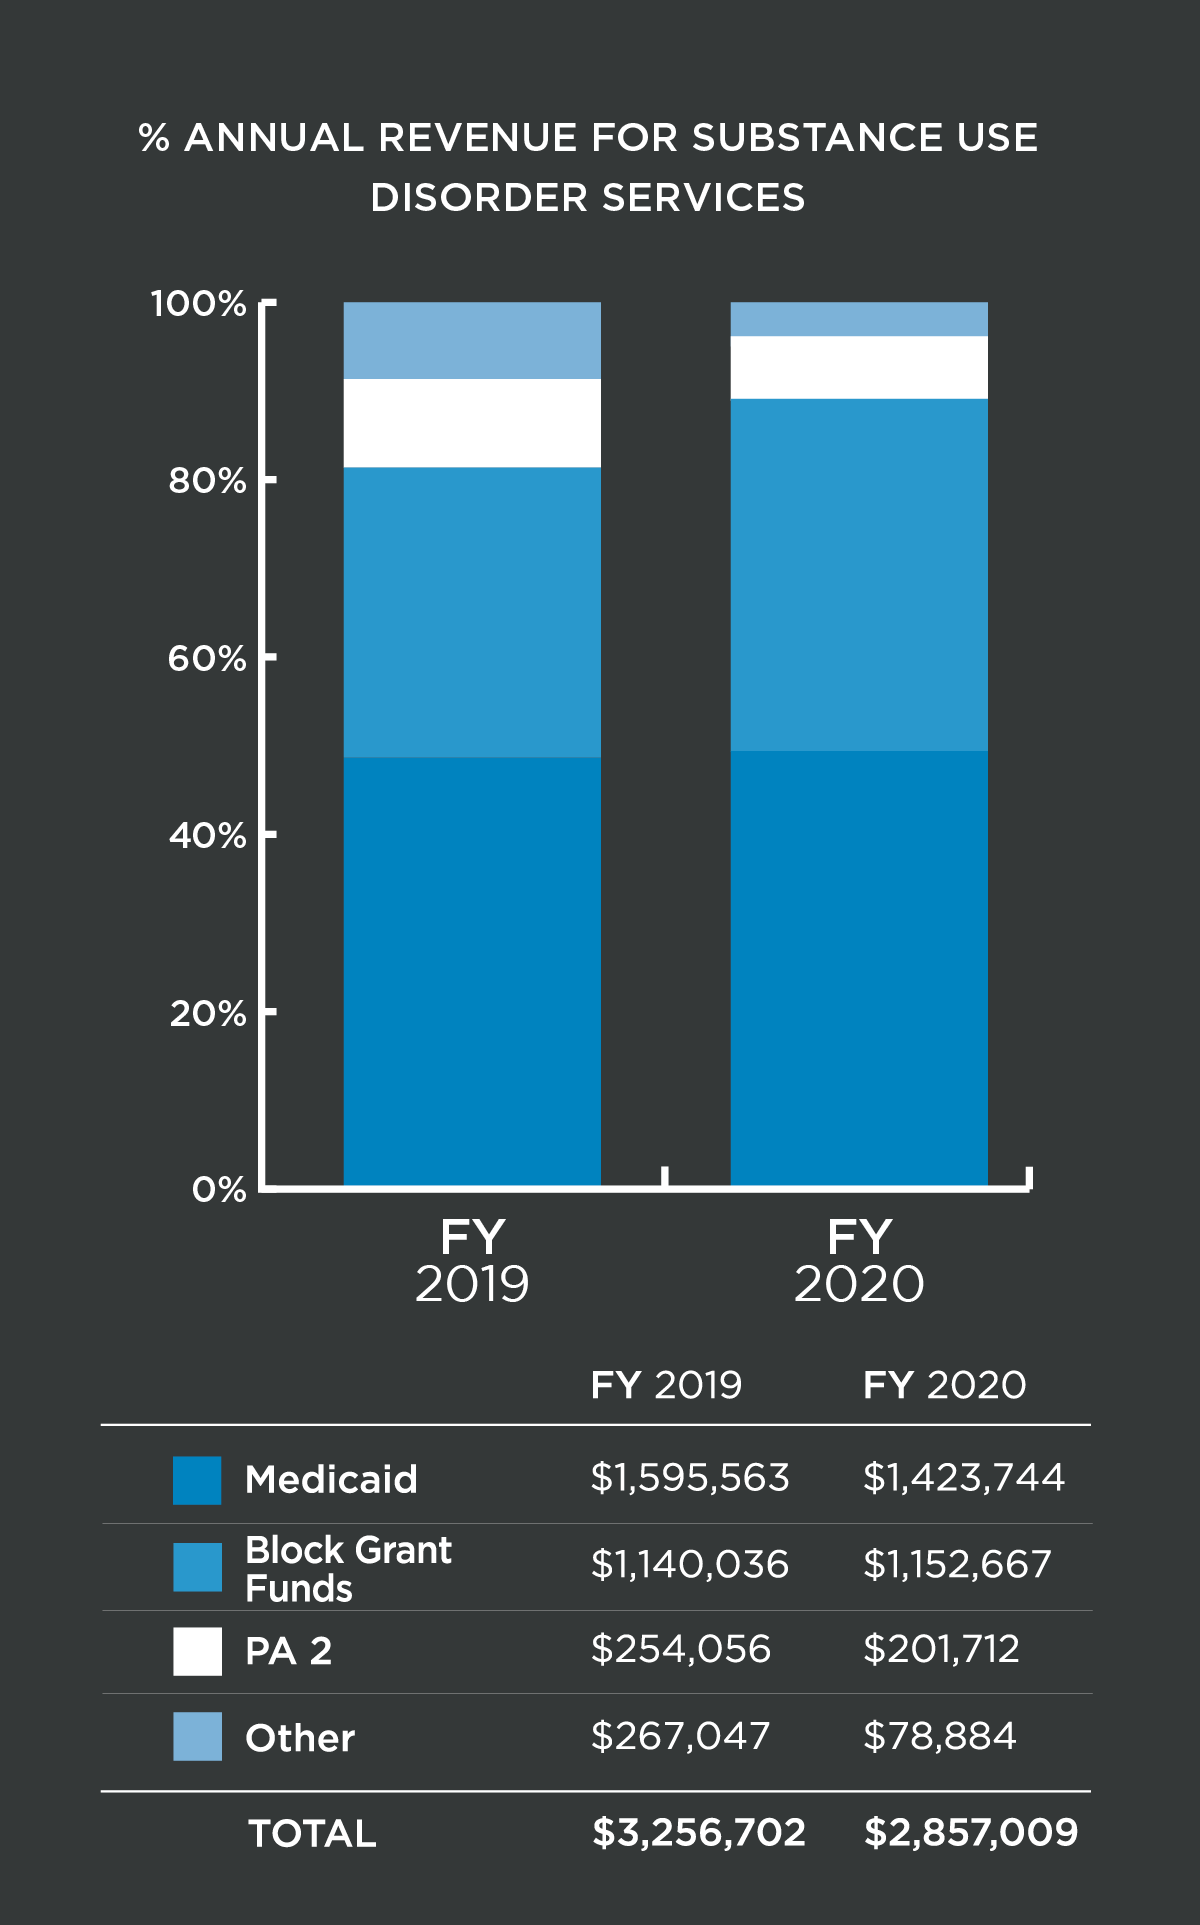 % Annual Revenue For Substance Use Disorder Services